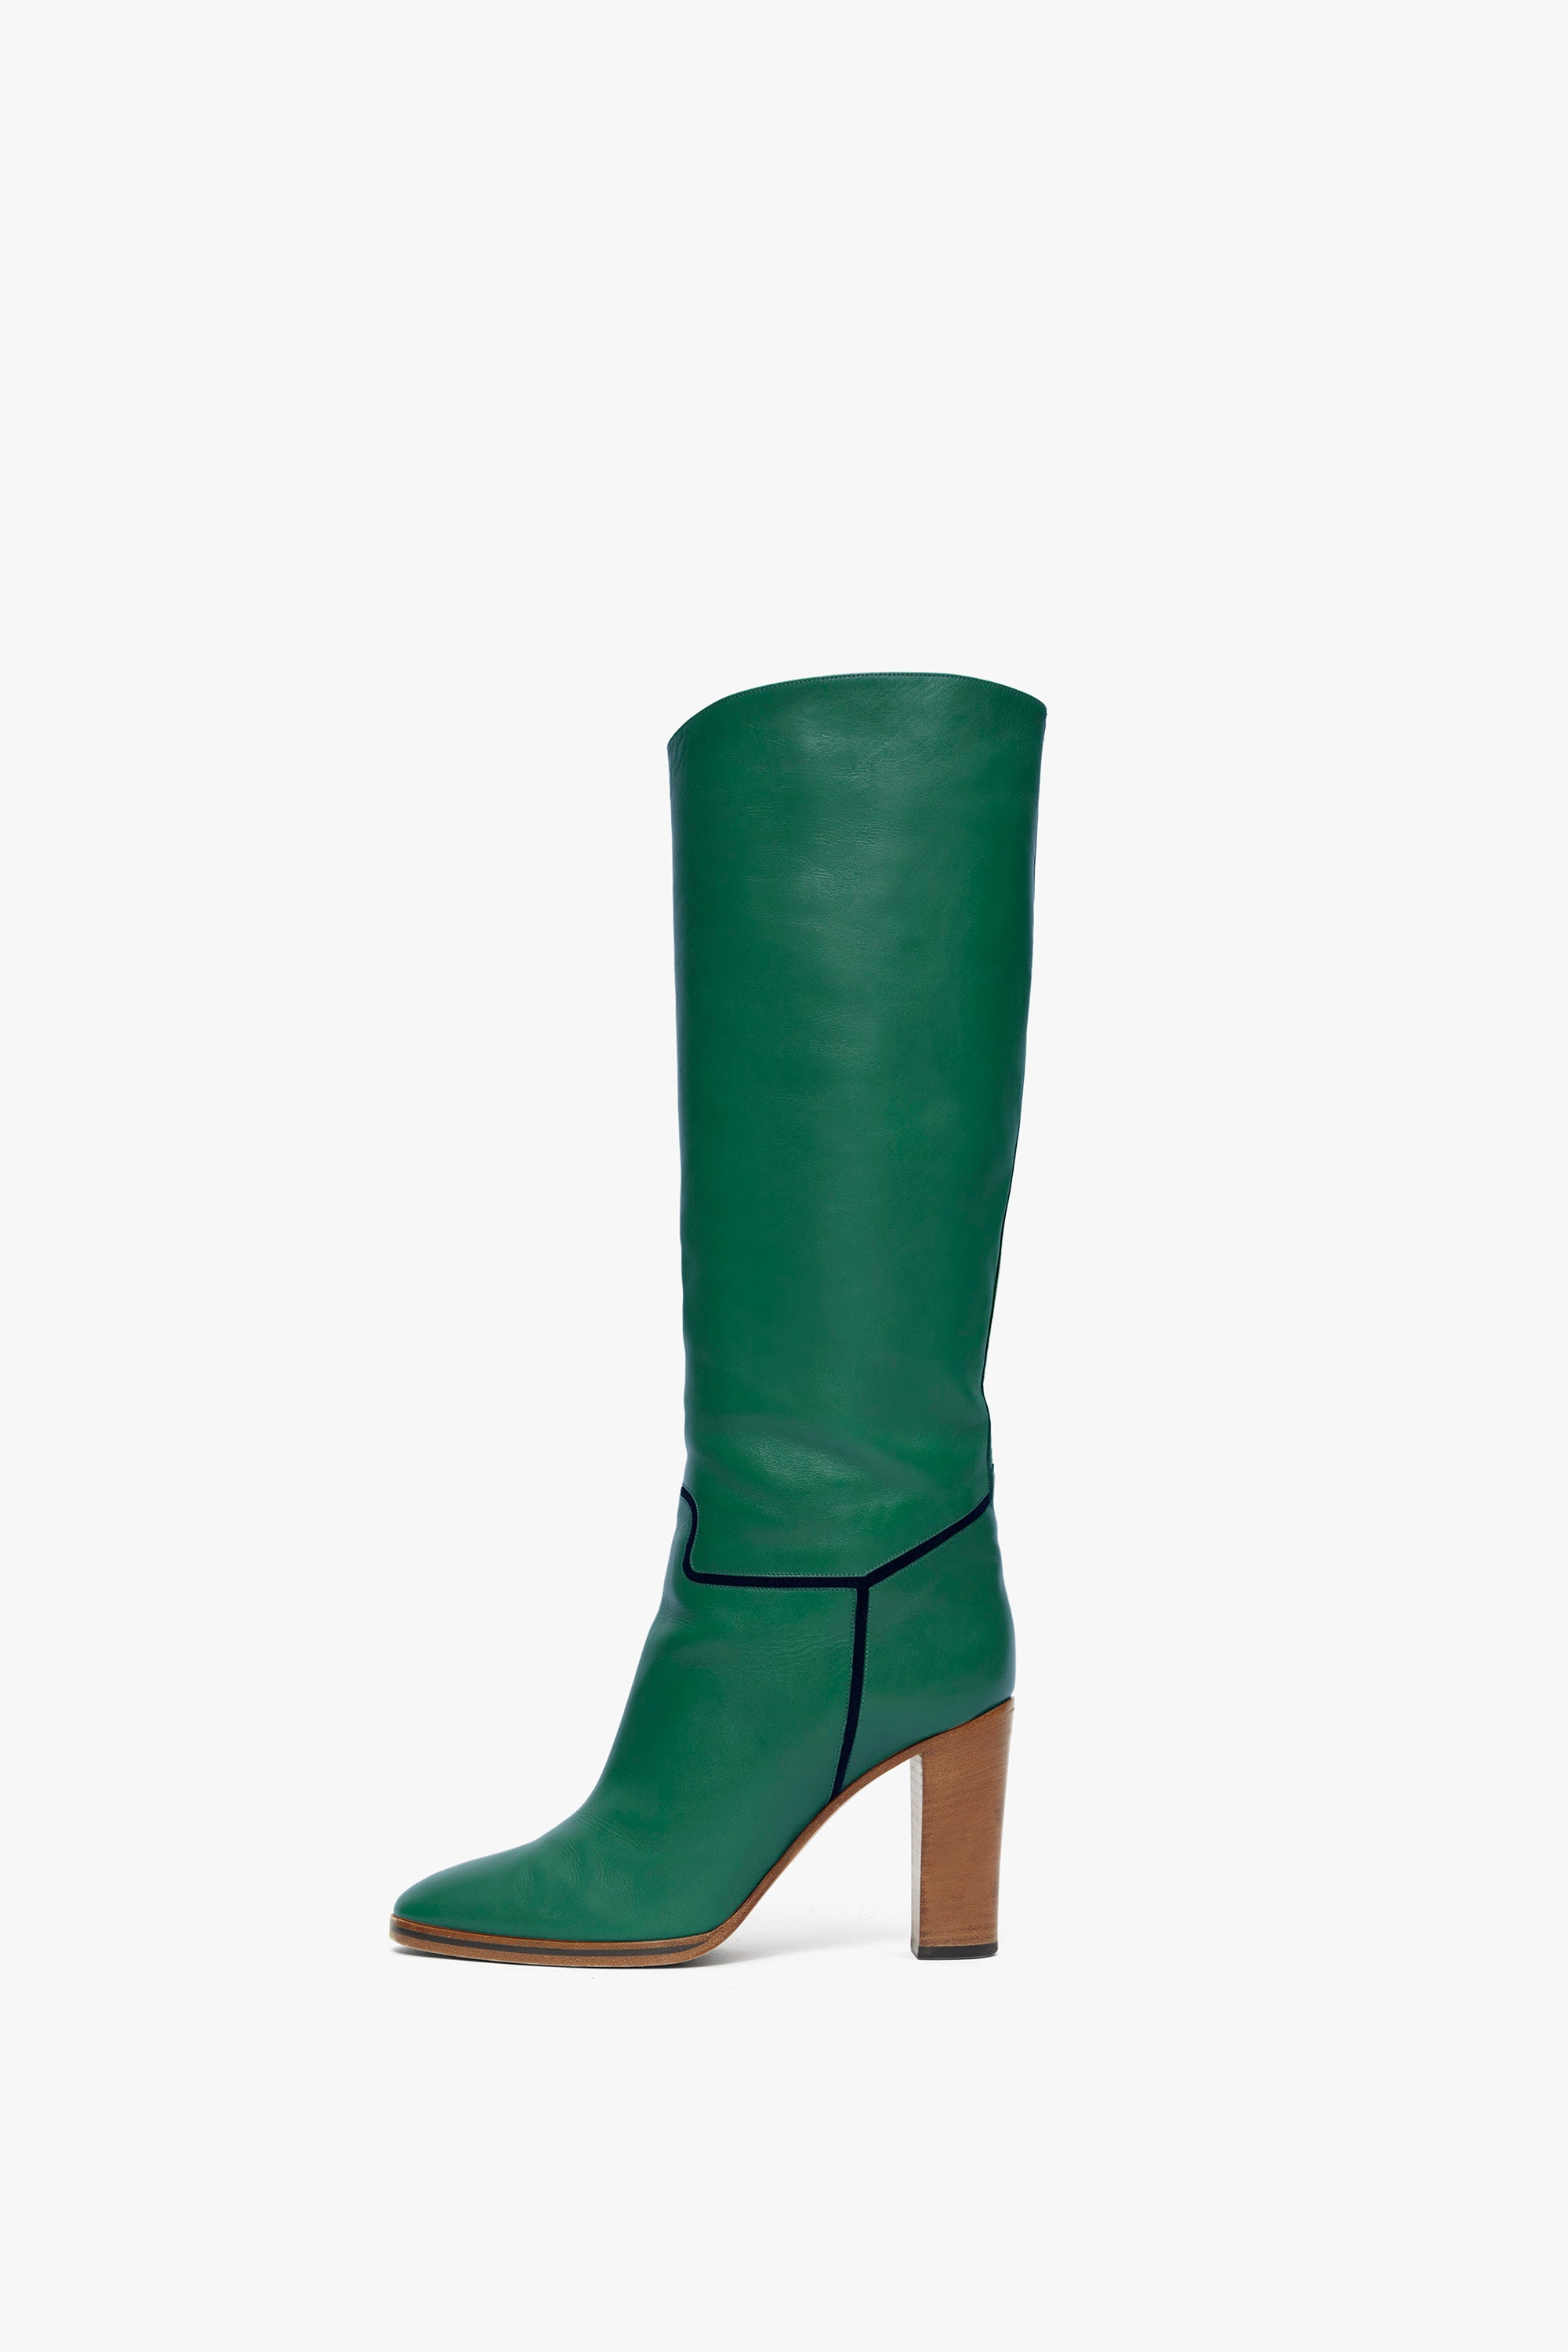 Valentina Knee-high Leather 95mm Boot in Mint Green